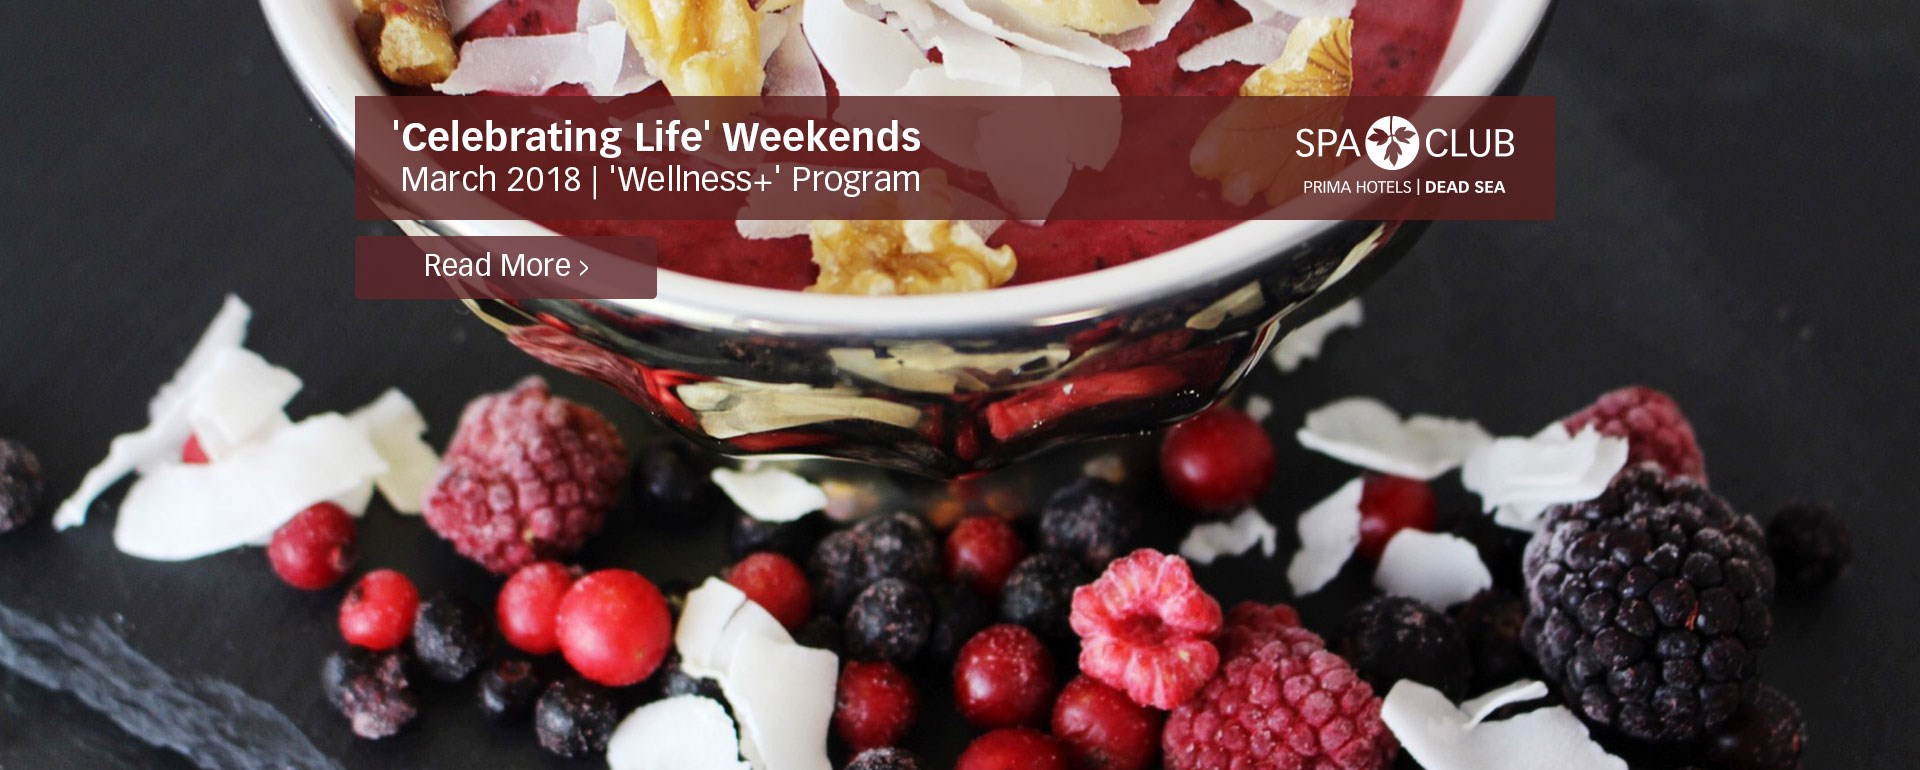 March 2018:  'Celebrating Life' Weekends